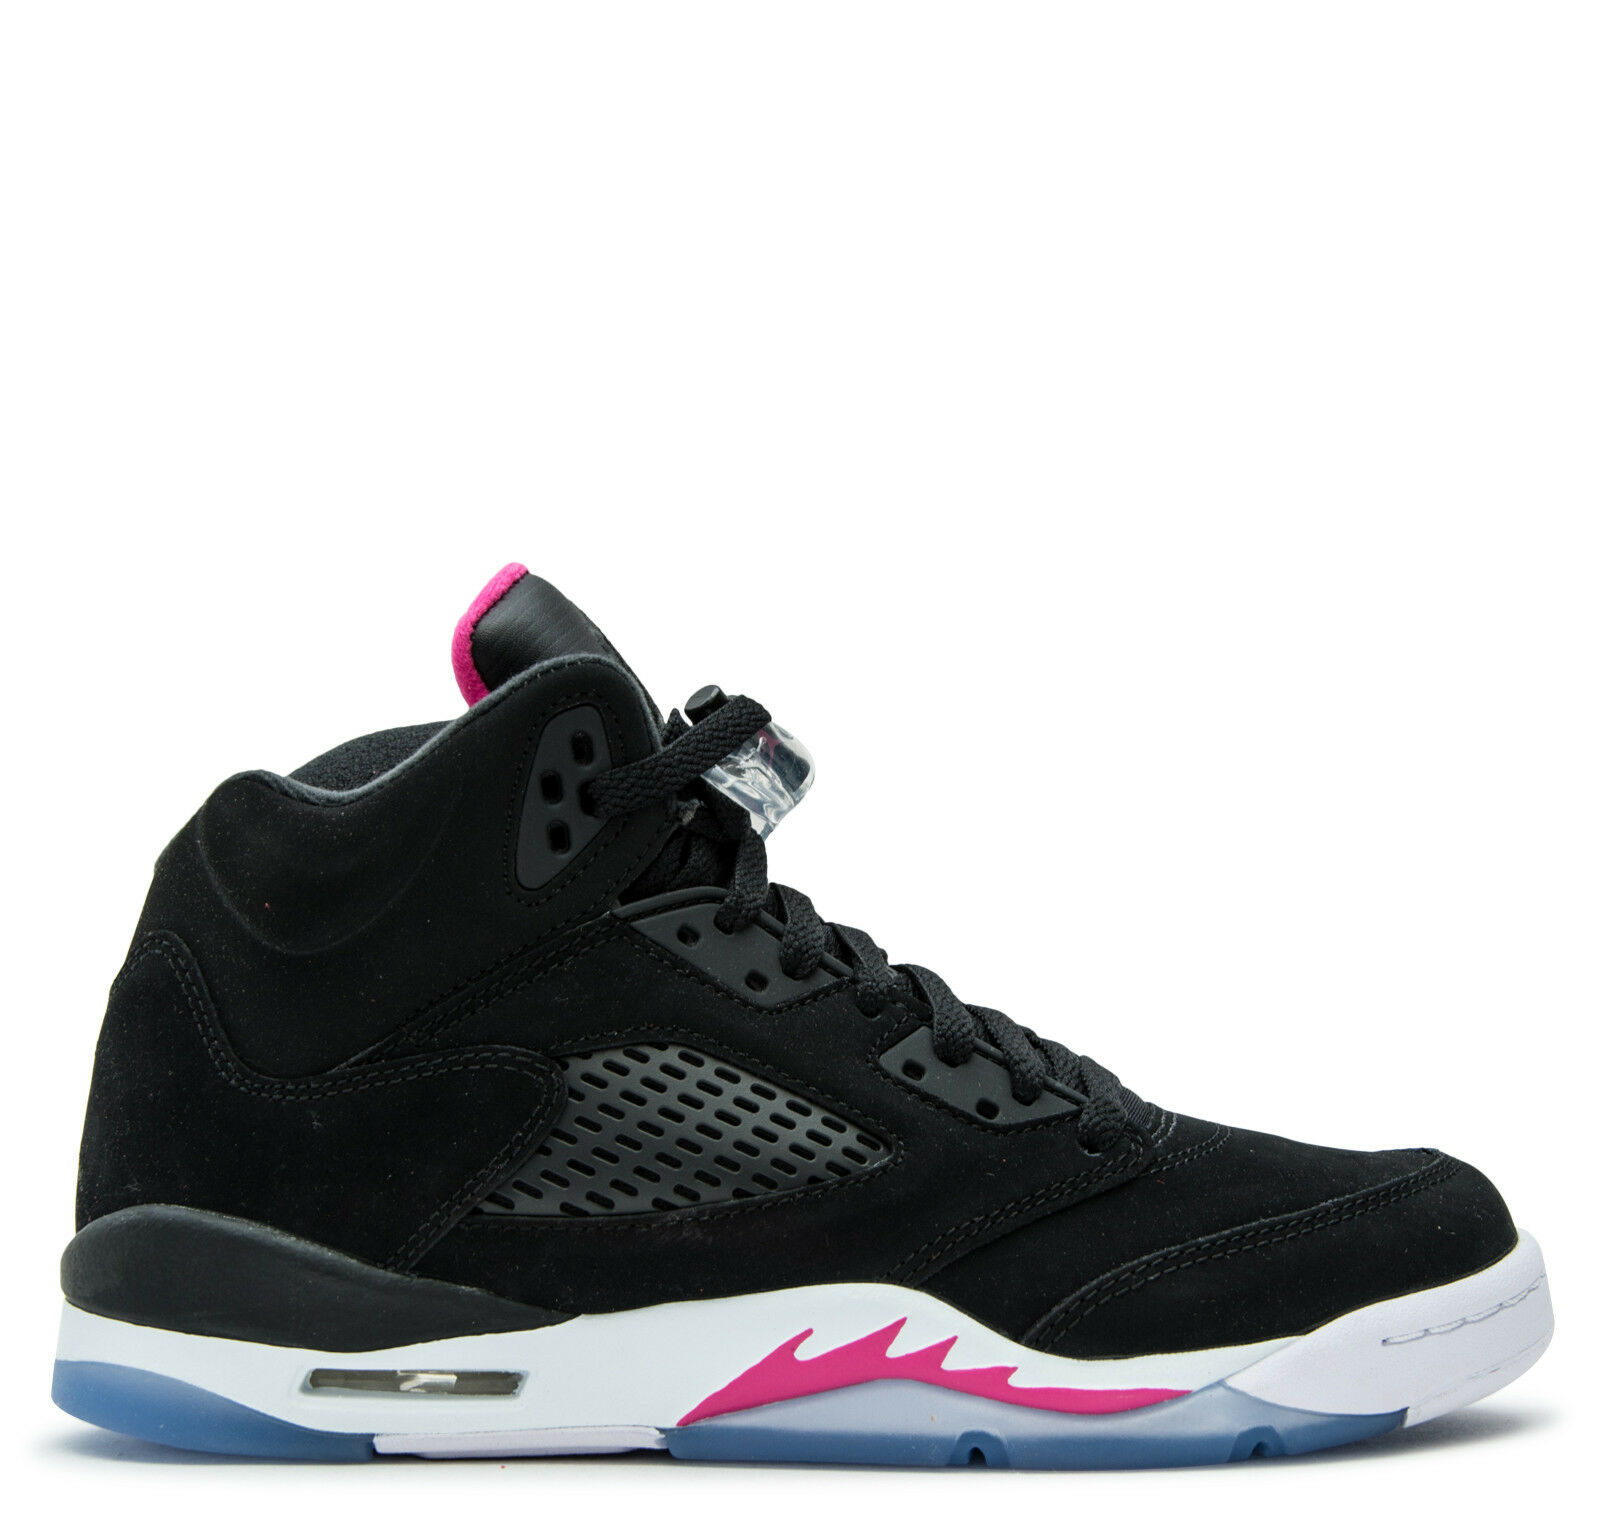 "Grade School Youth Size Nike Air Jordan Retro 5 /""Deadly Pink/"" 440892 029 Fashion"